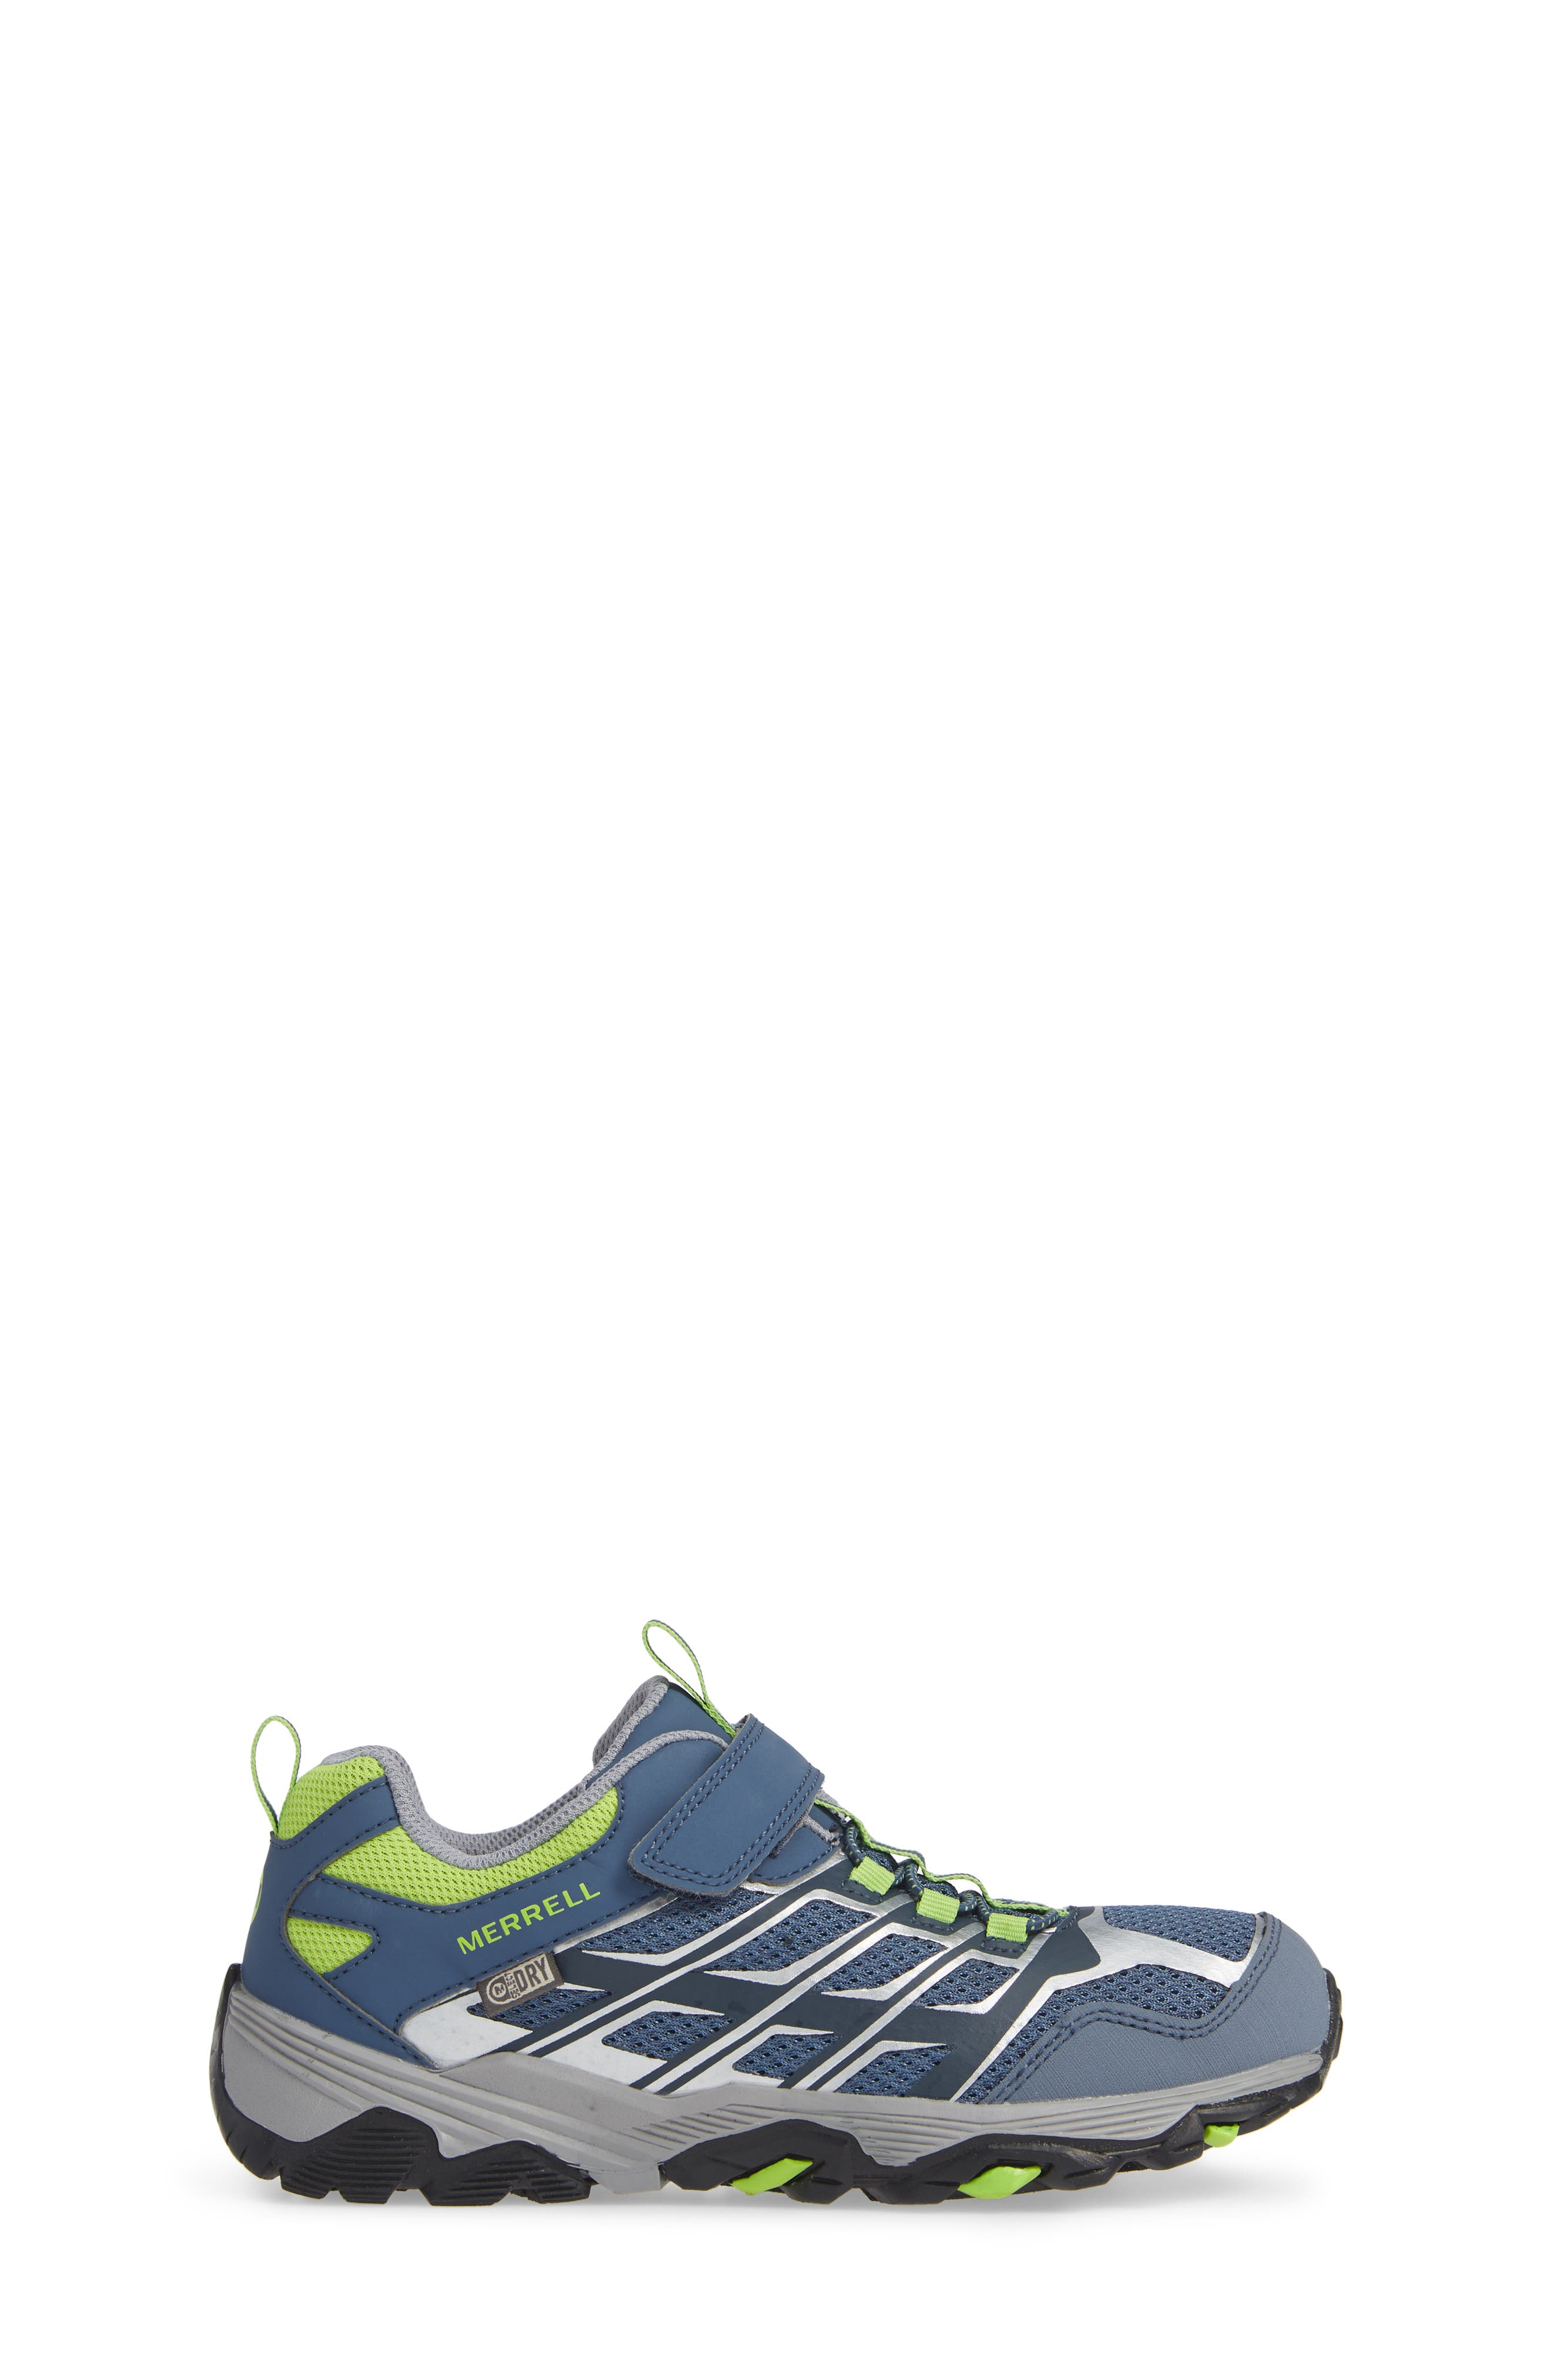 Moab FST Polar Low Waterproof Sneaker,                             Alternate thumbnail 3, color,                             GREY/ GREEN